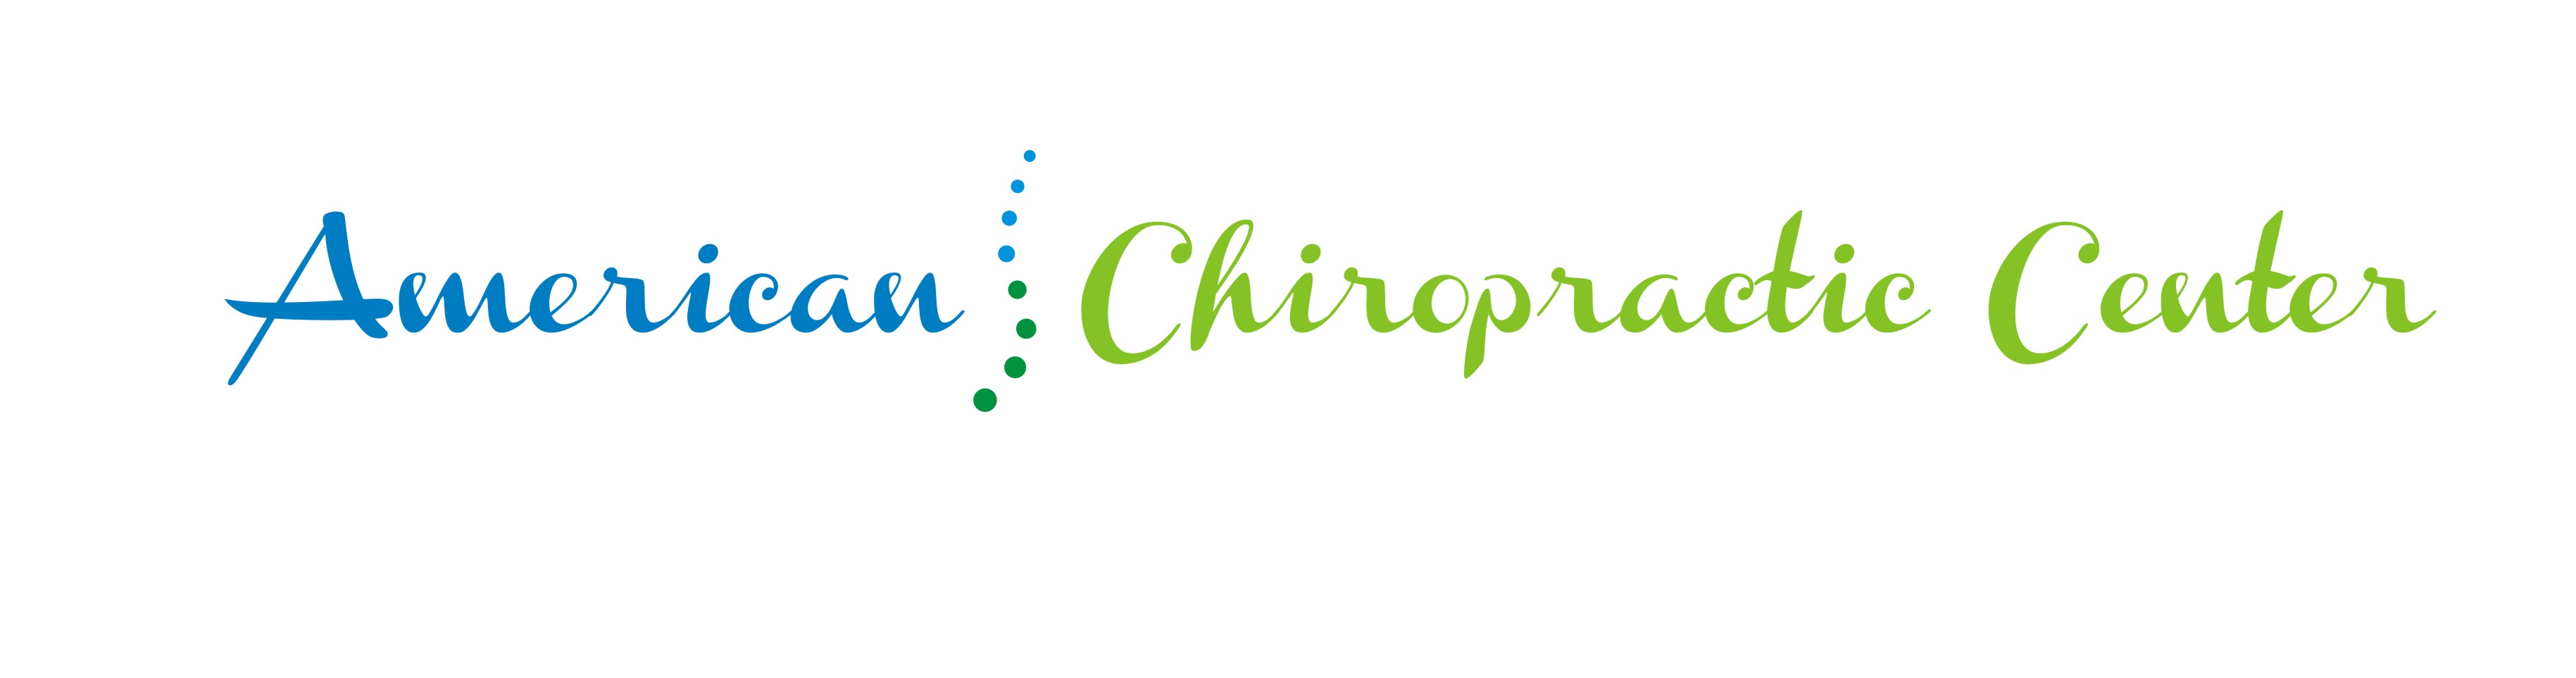 Logo Design by Crystal Desizns - Entry No. 236 in the Logo Design Contest Logo Design for American Chiropractic Center.